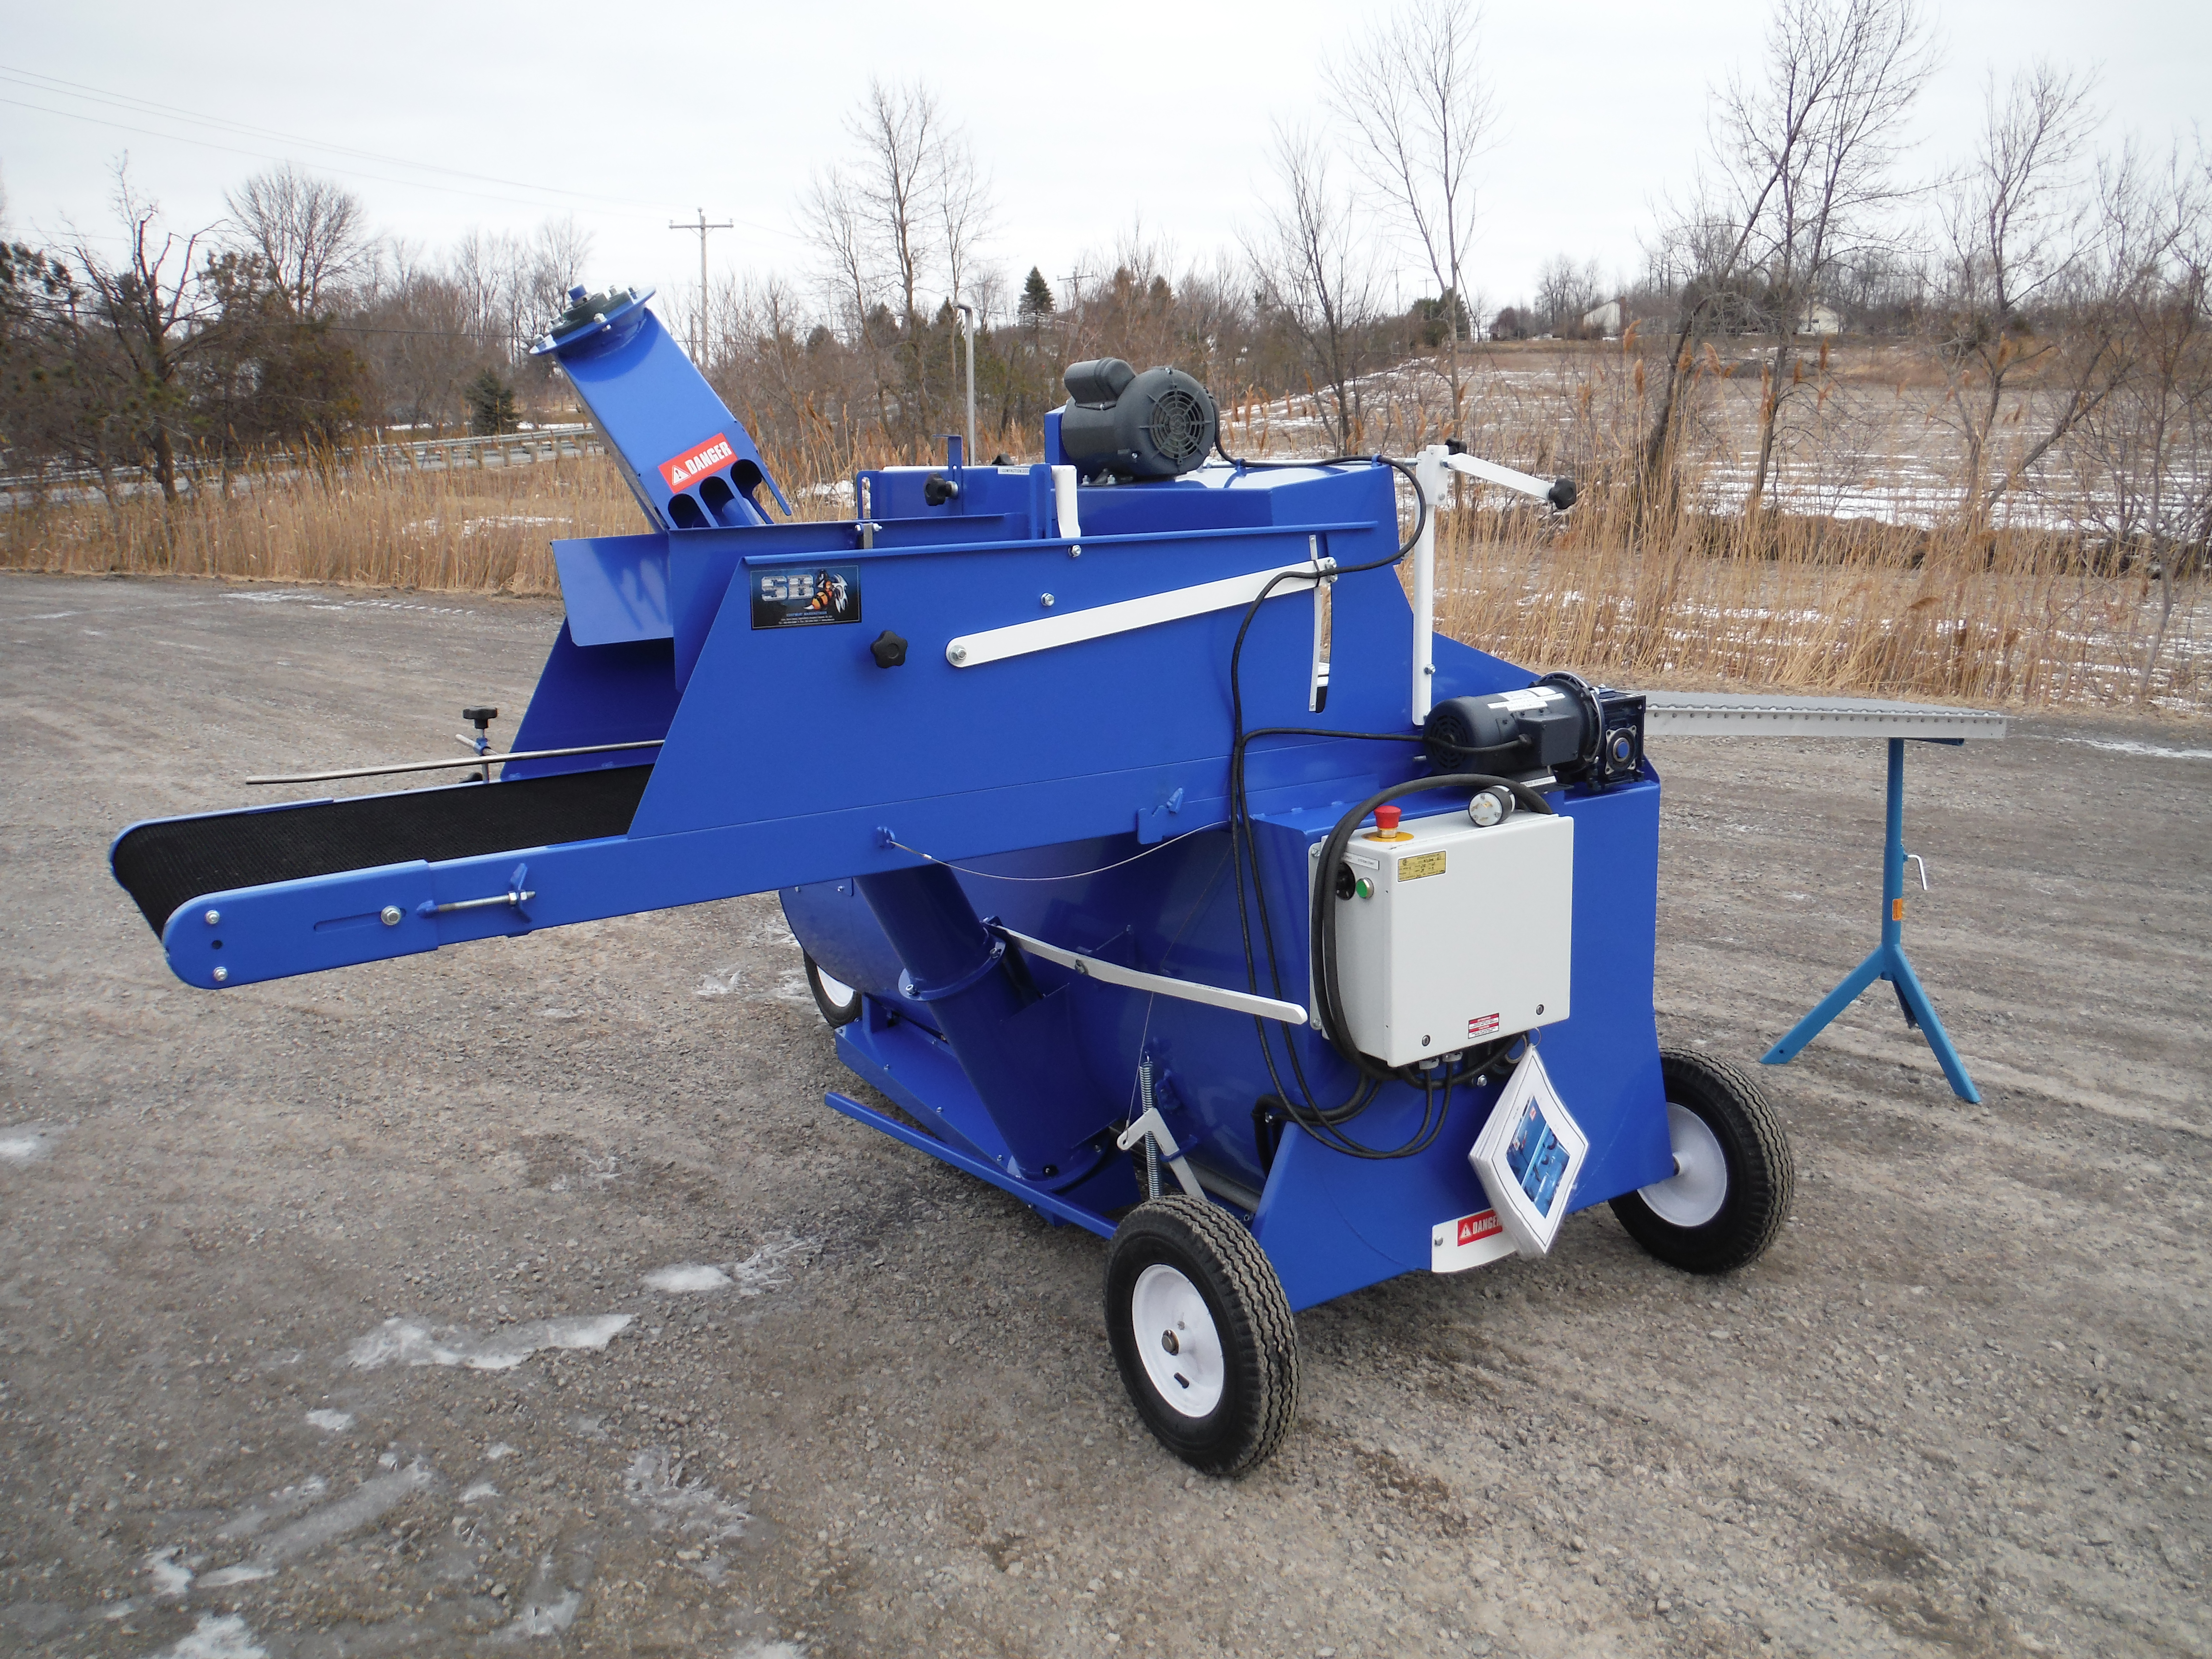 SB 01 bale breaker, one yard mixer and automatic filler